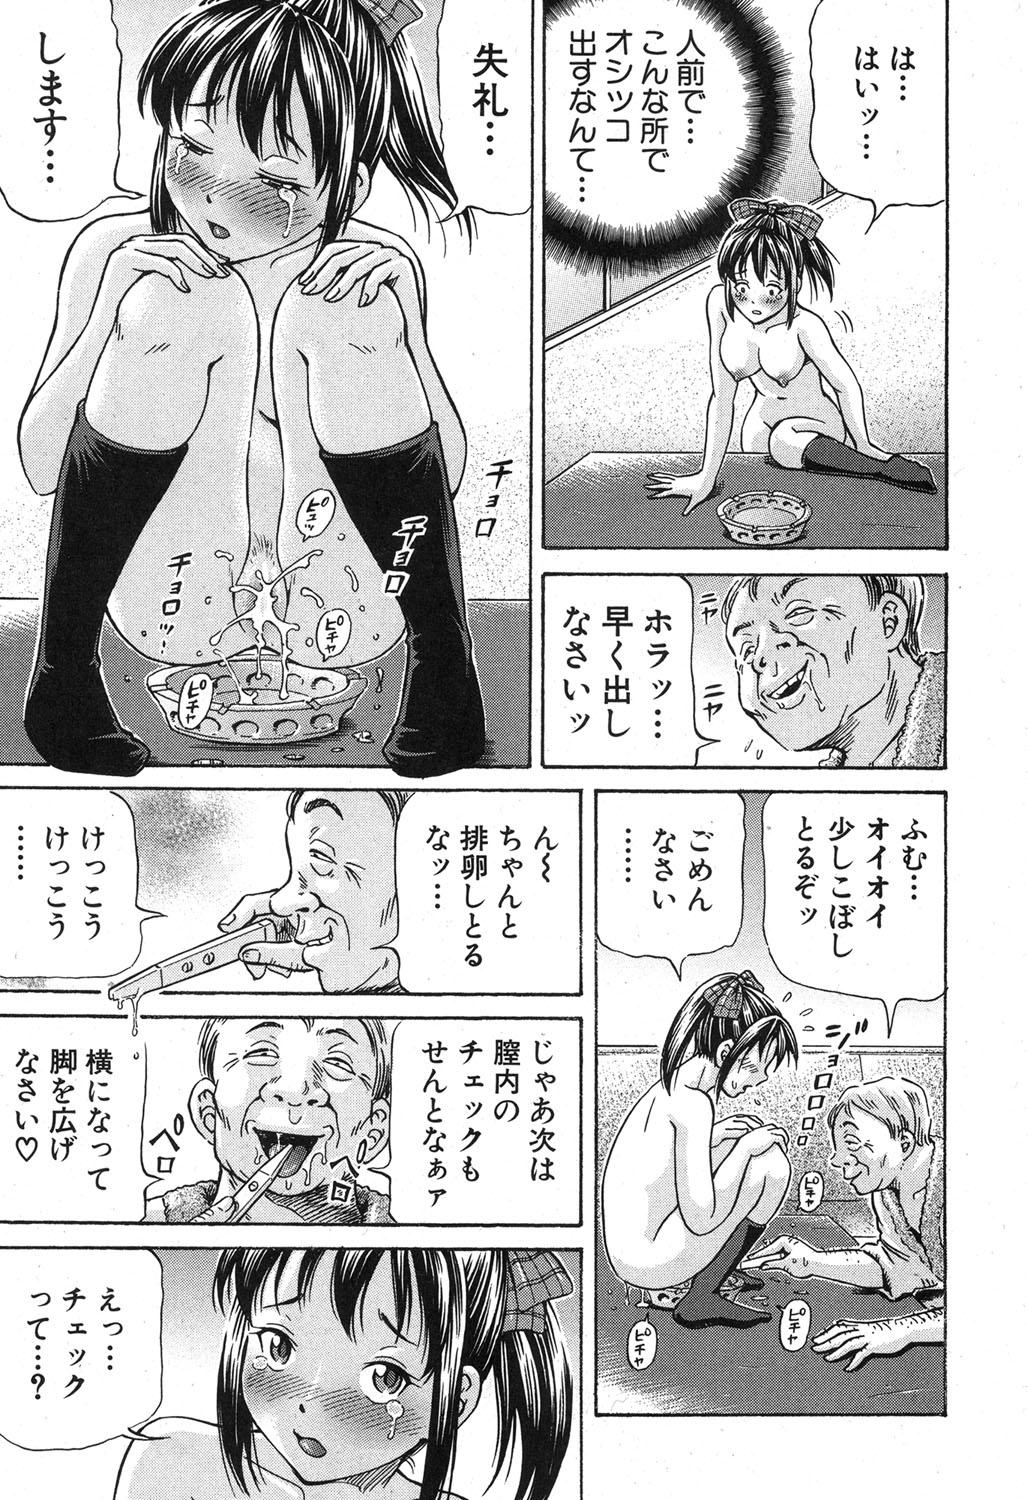 BUSTER COMIC 2015-11 169